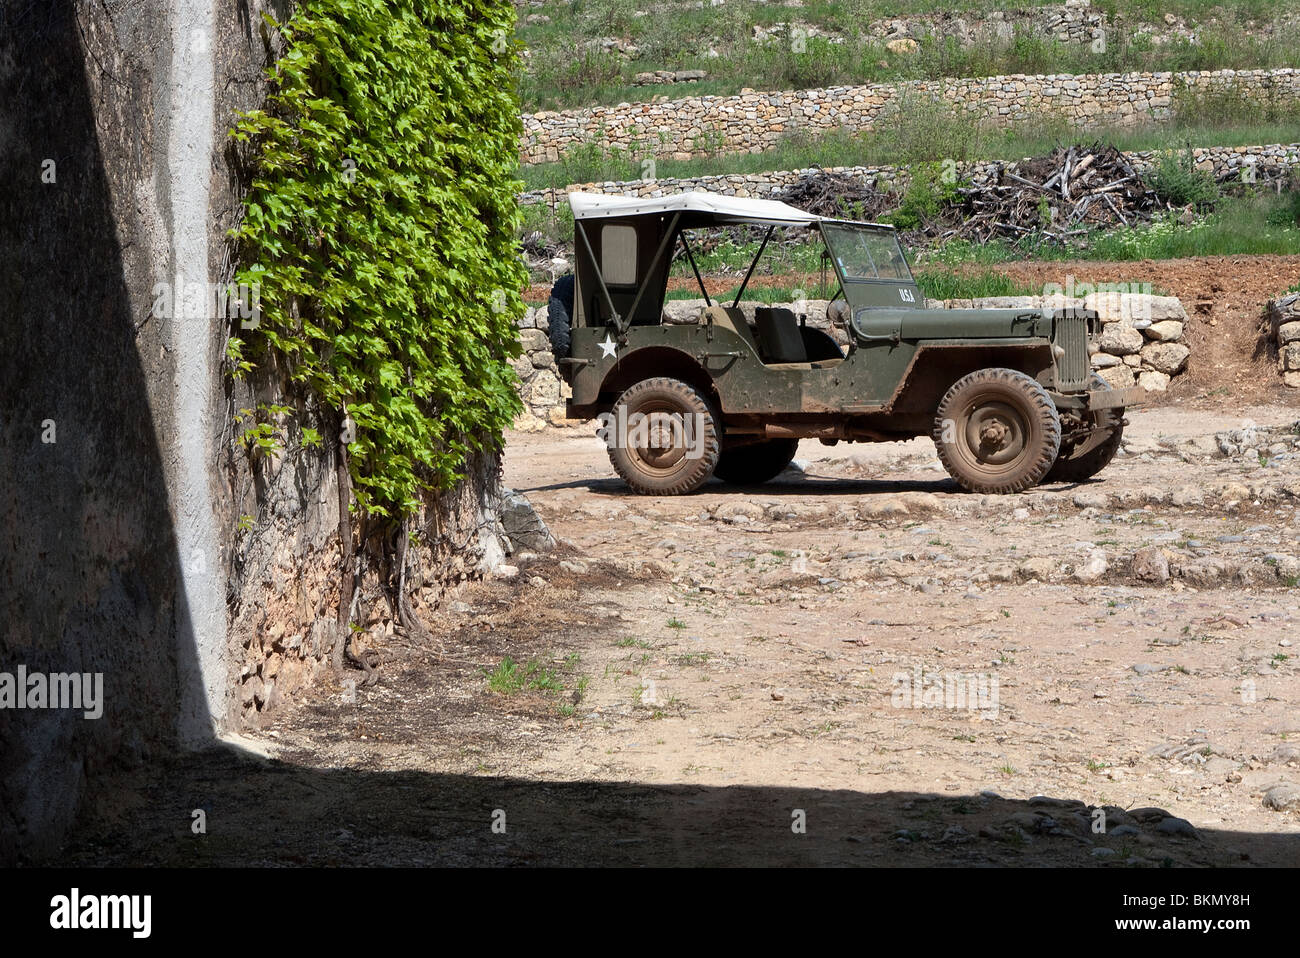 WWII Willy's  US Army Jeep in France - Stock Image